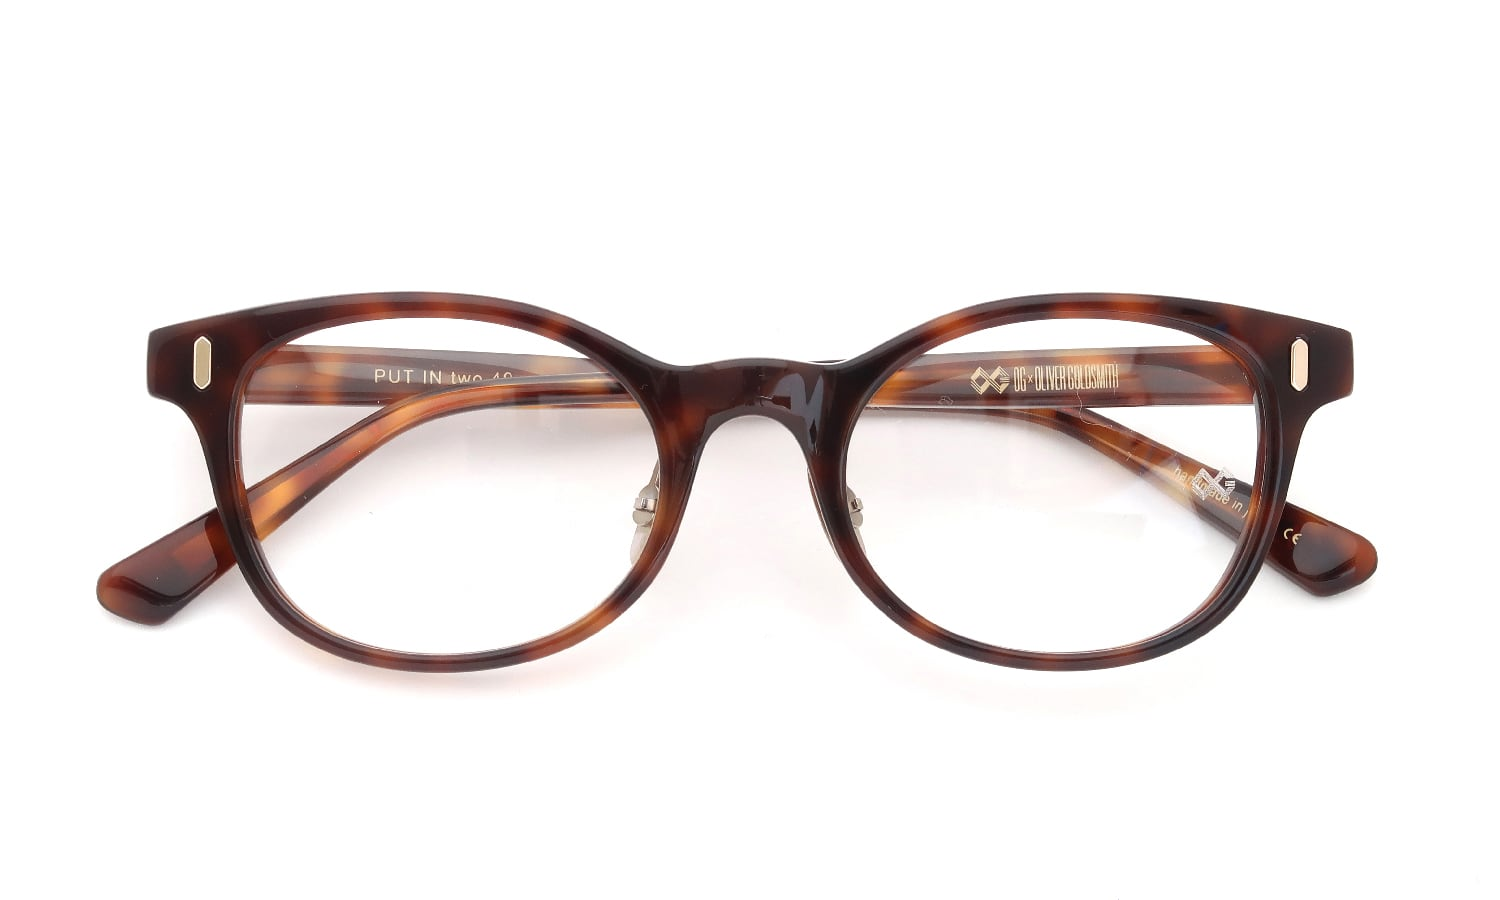 OG × OLIVER GOLDSMITH PUT IN two 49 4